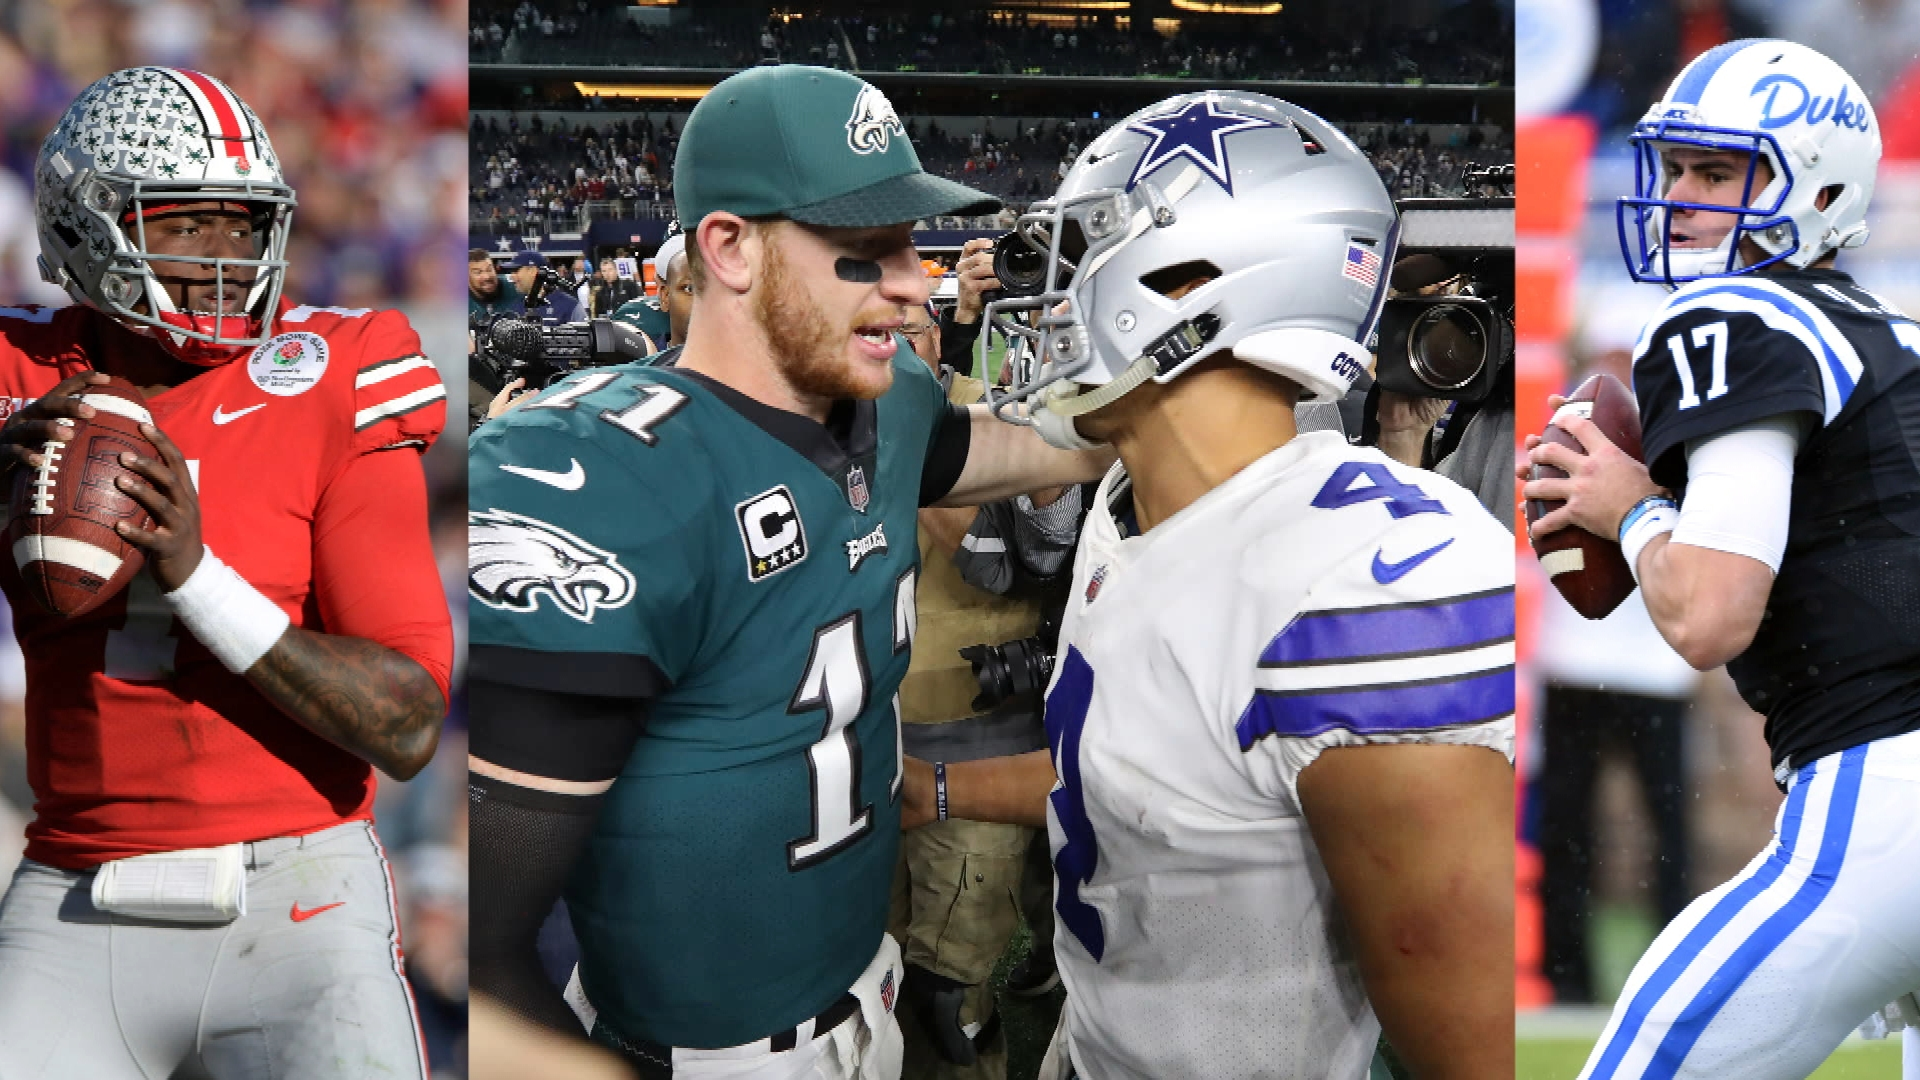 NFC East headed for an arms race after first round of draft?